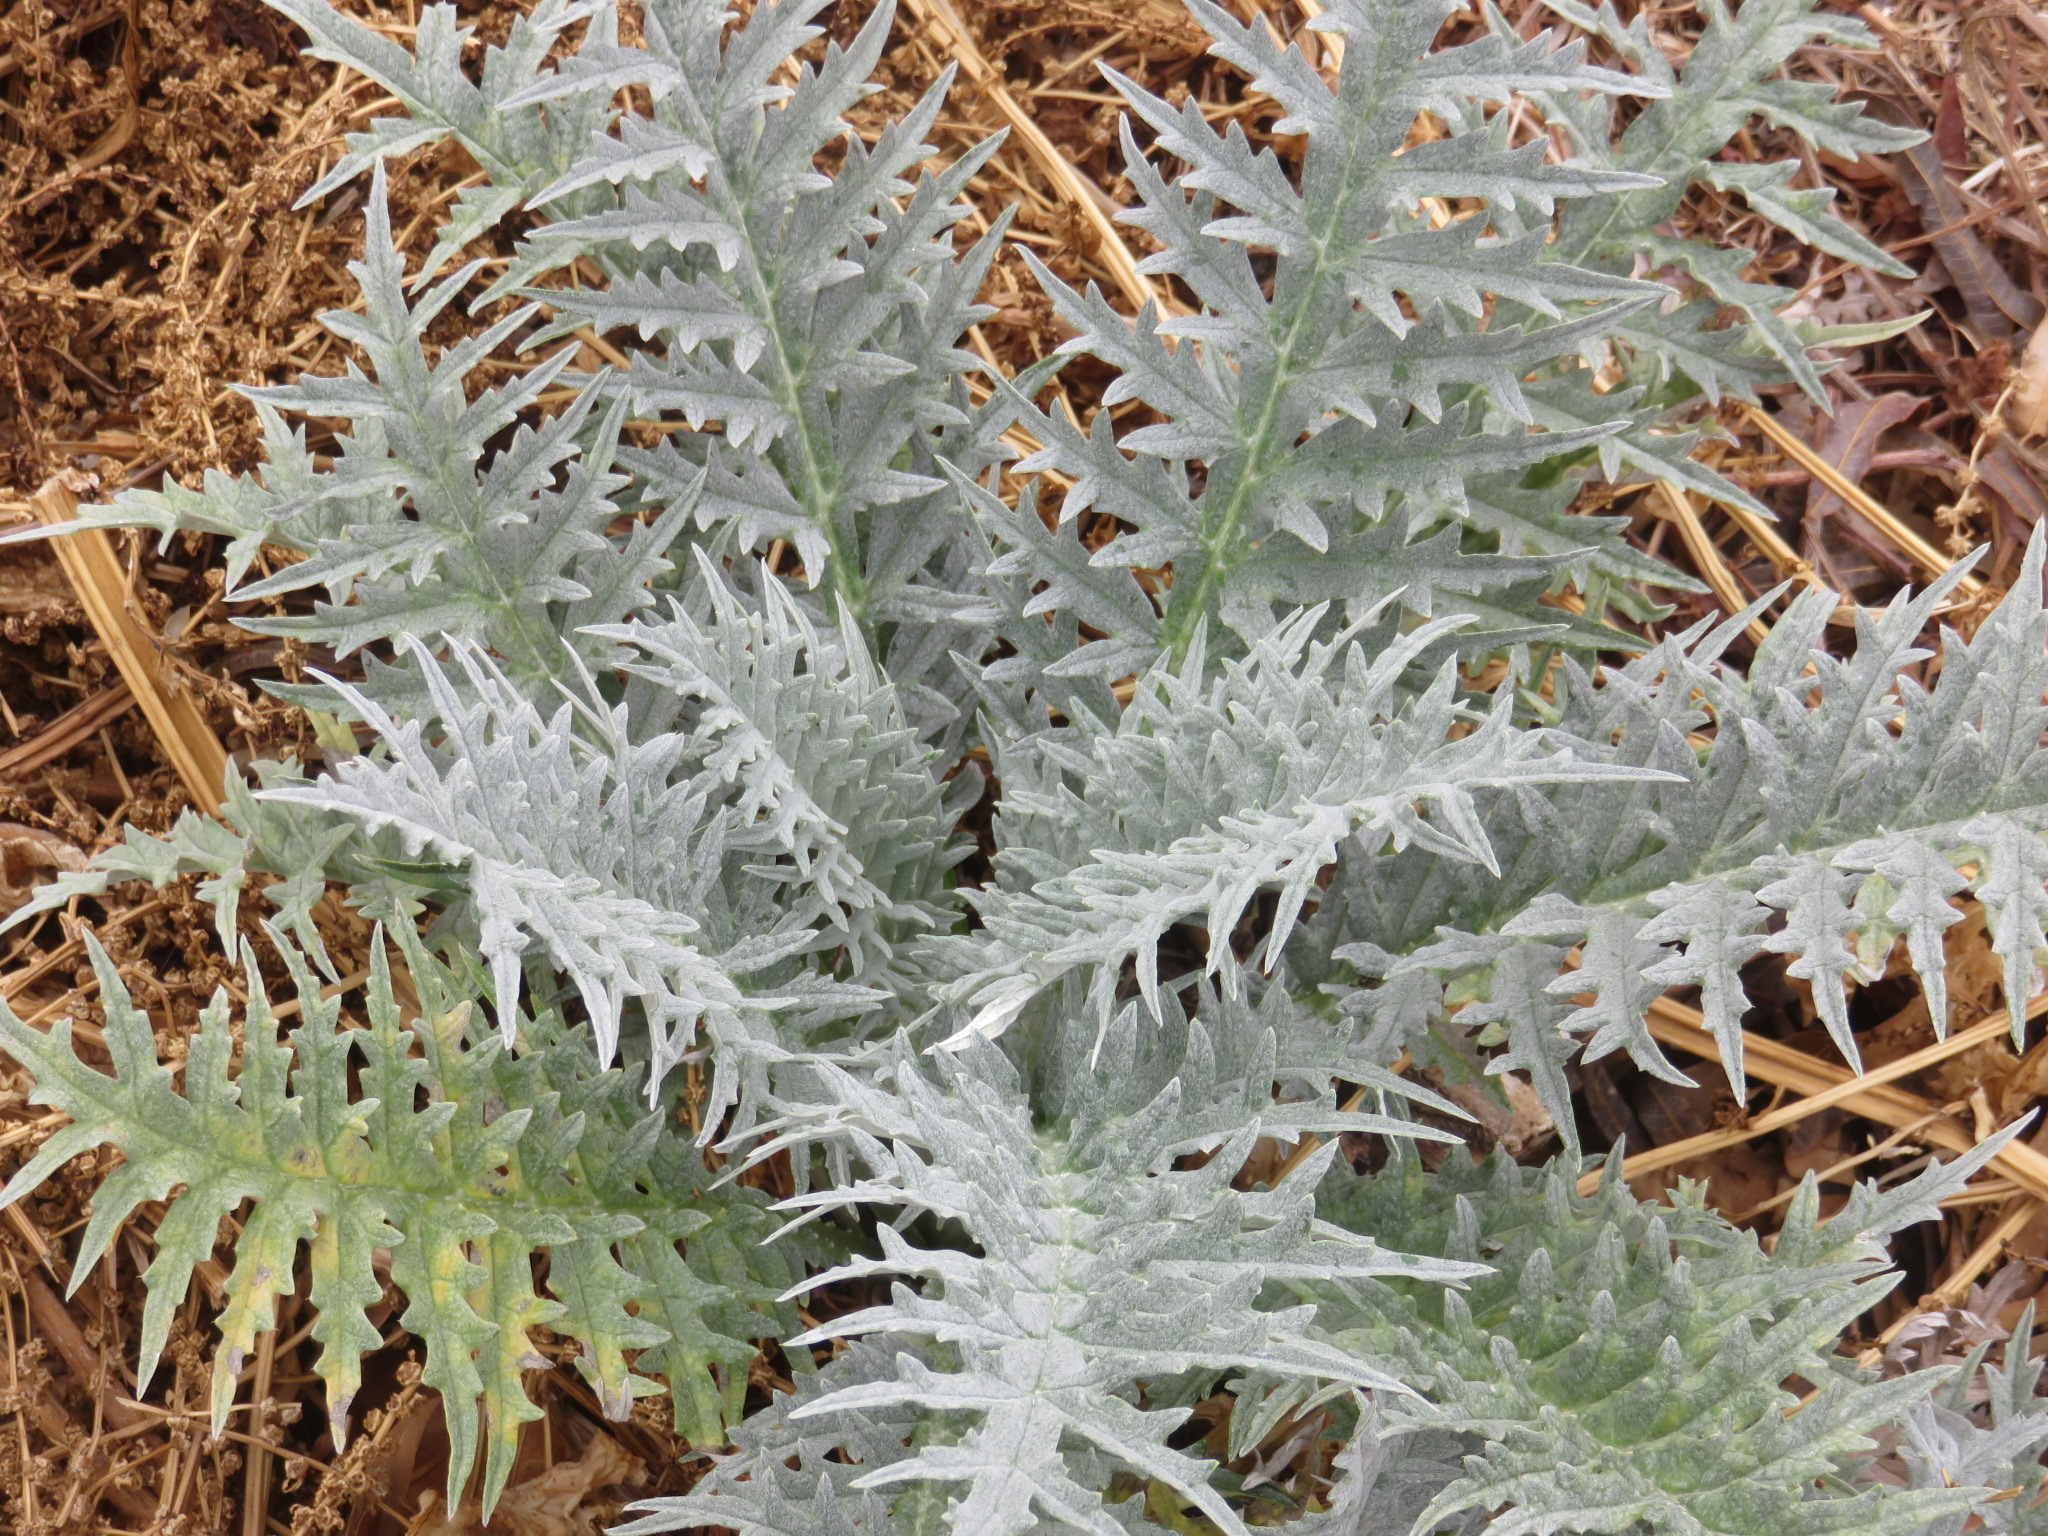 large sculptural leaves like artichoke can be interspersed with tall grassy herbs as seen in the plan below